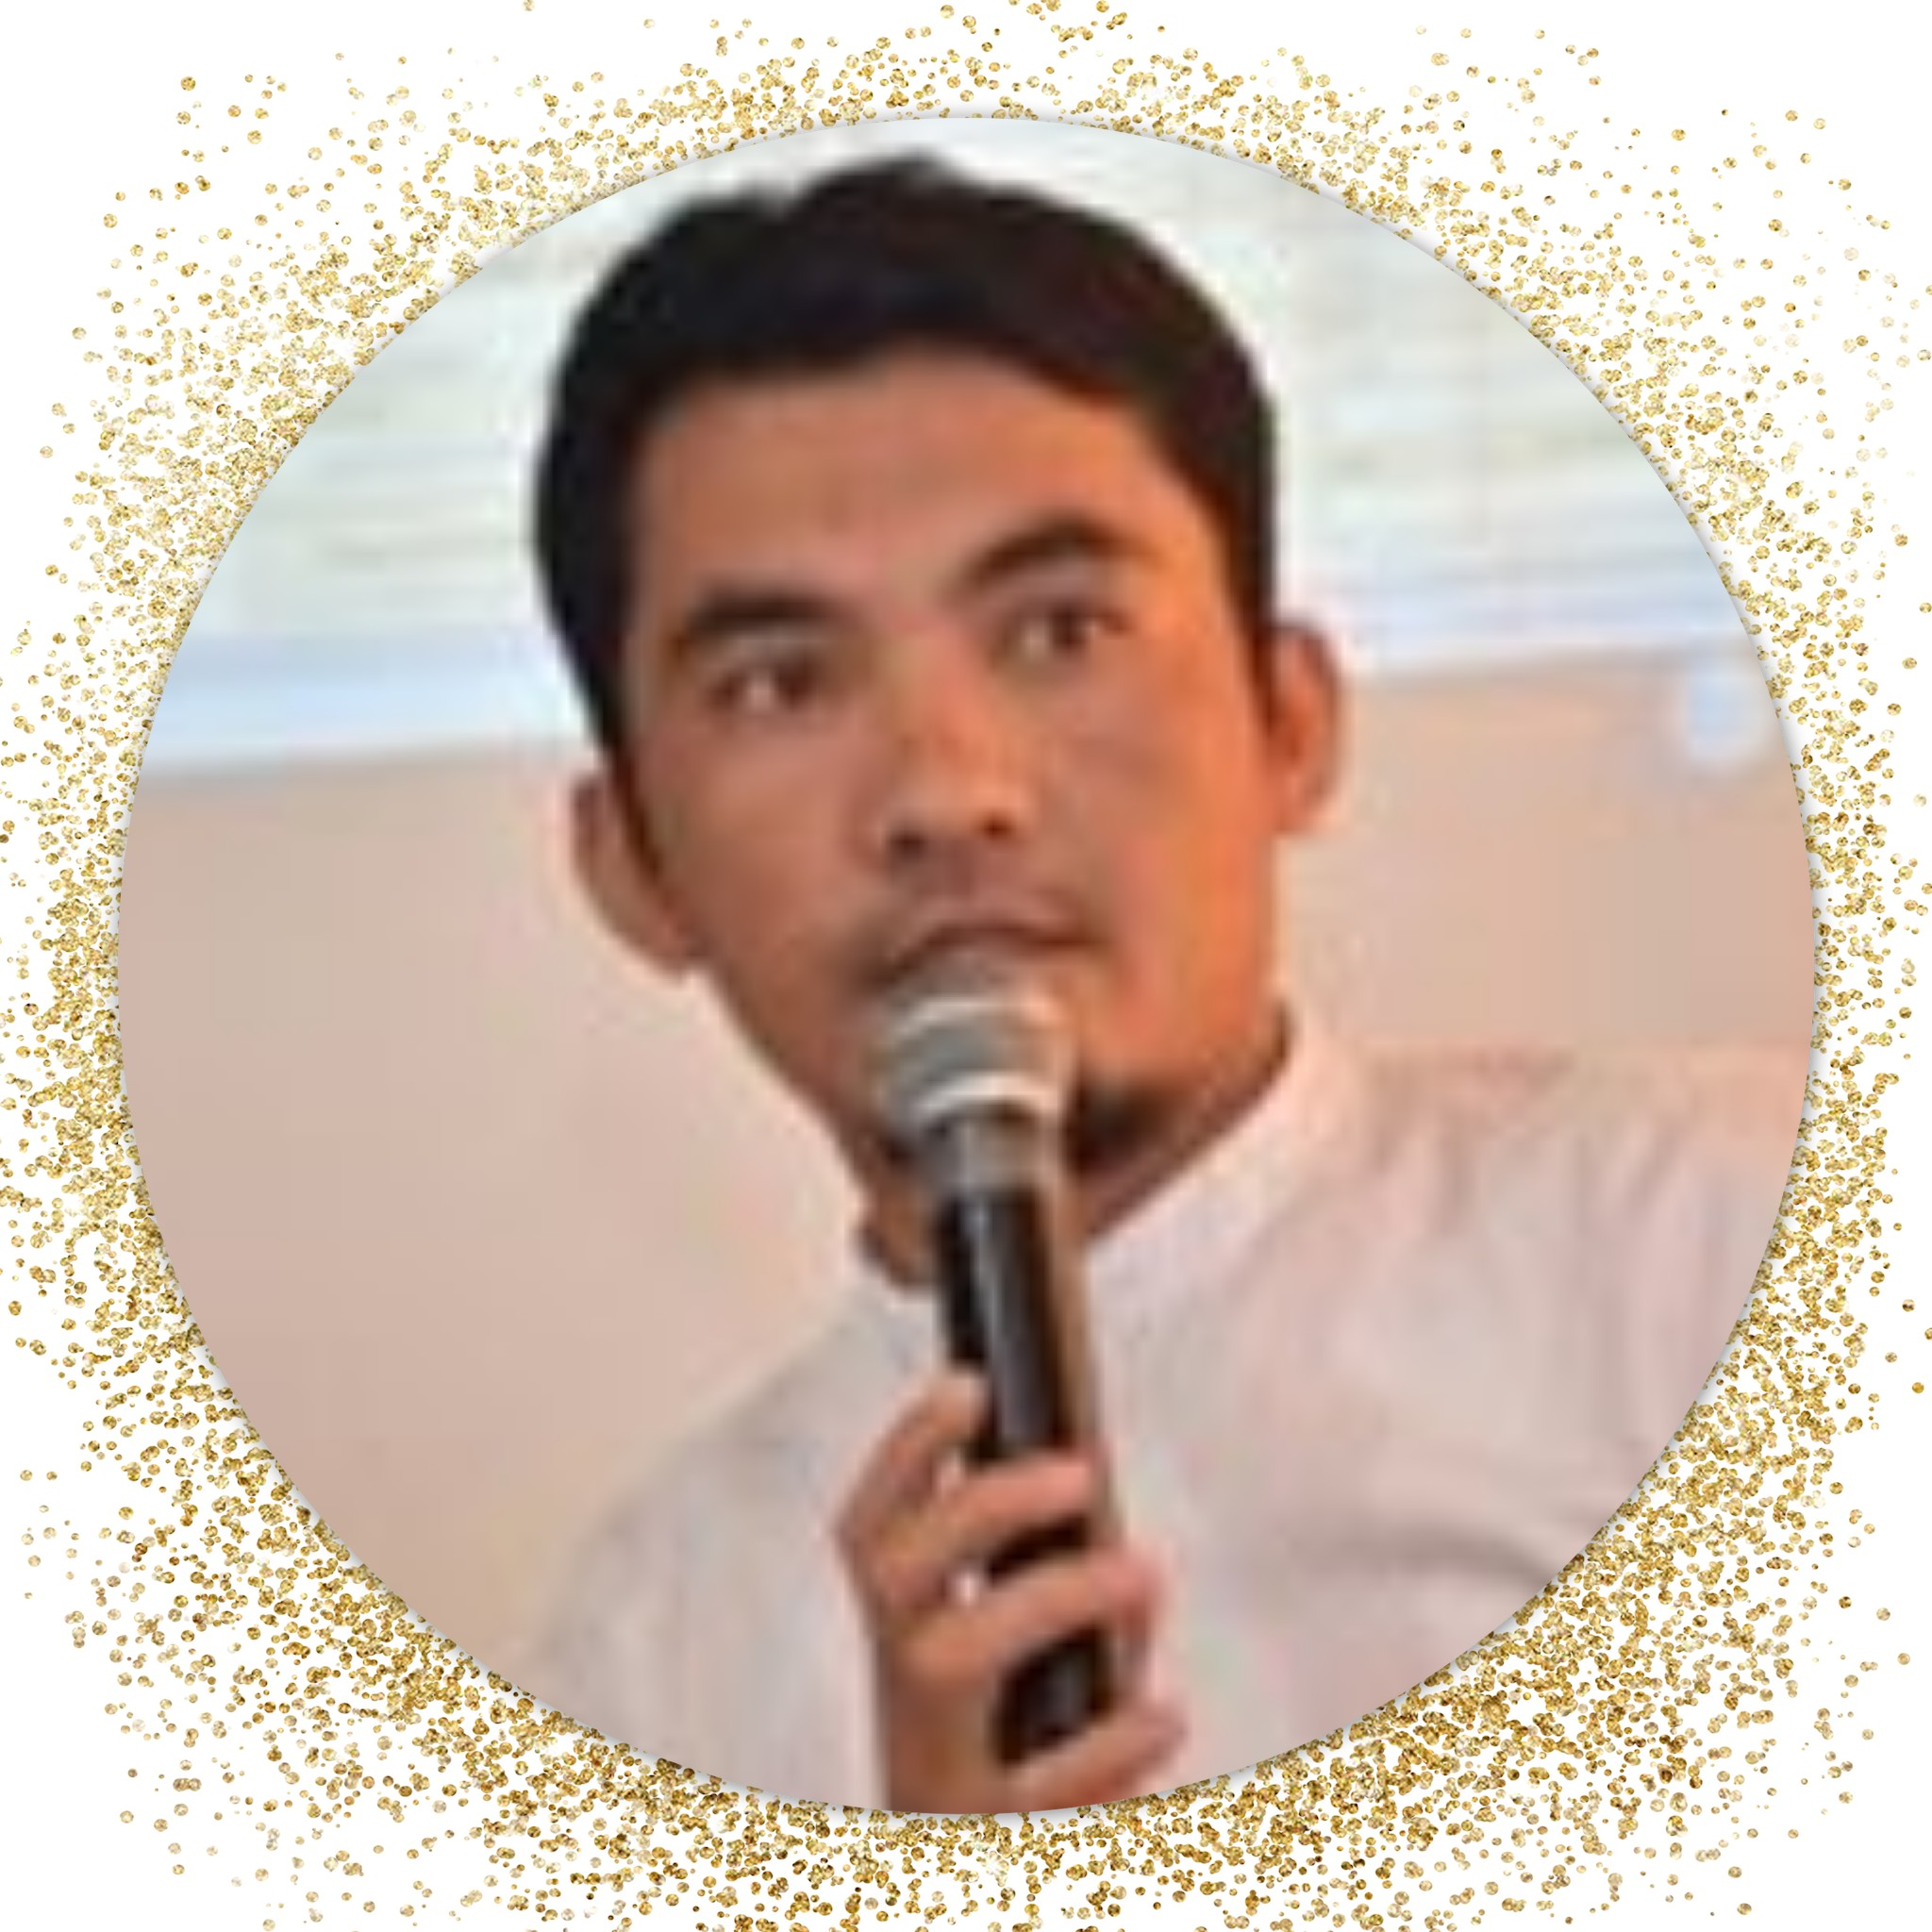 Arfan Novendi ▲ Active Writer and Associate Poetry Writer